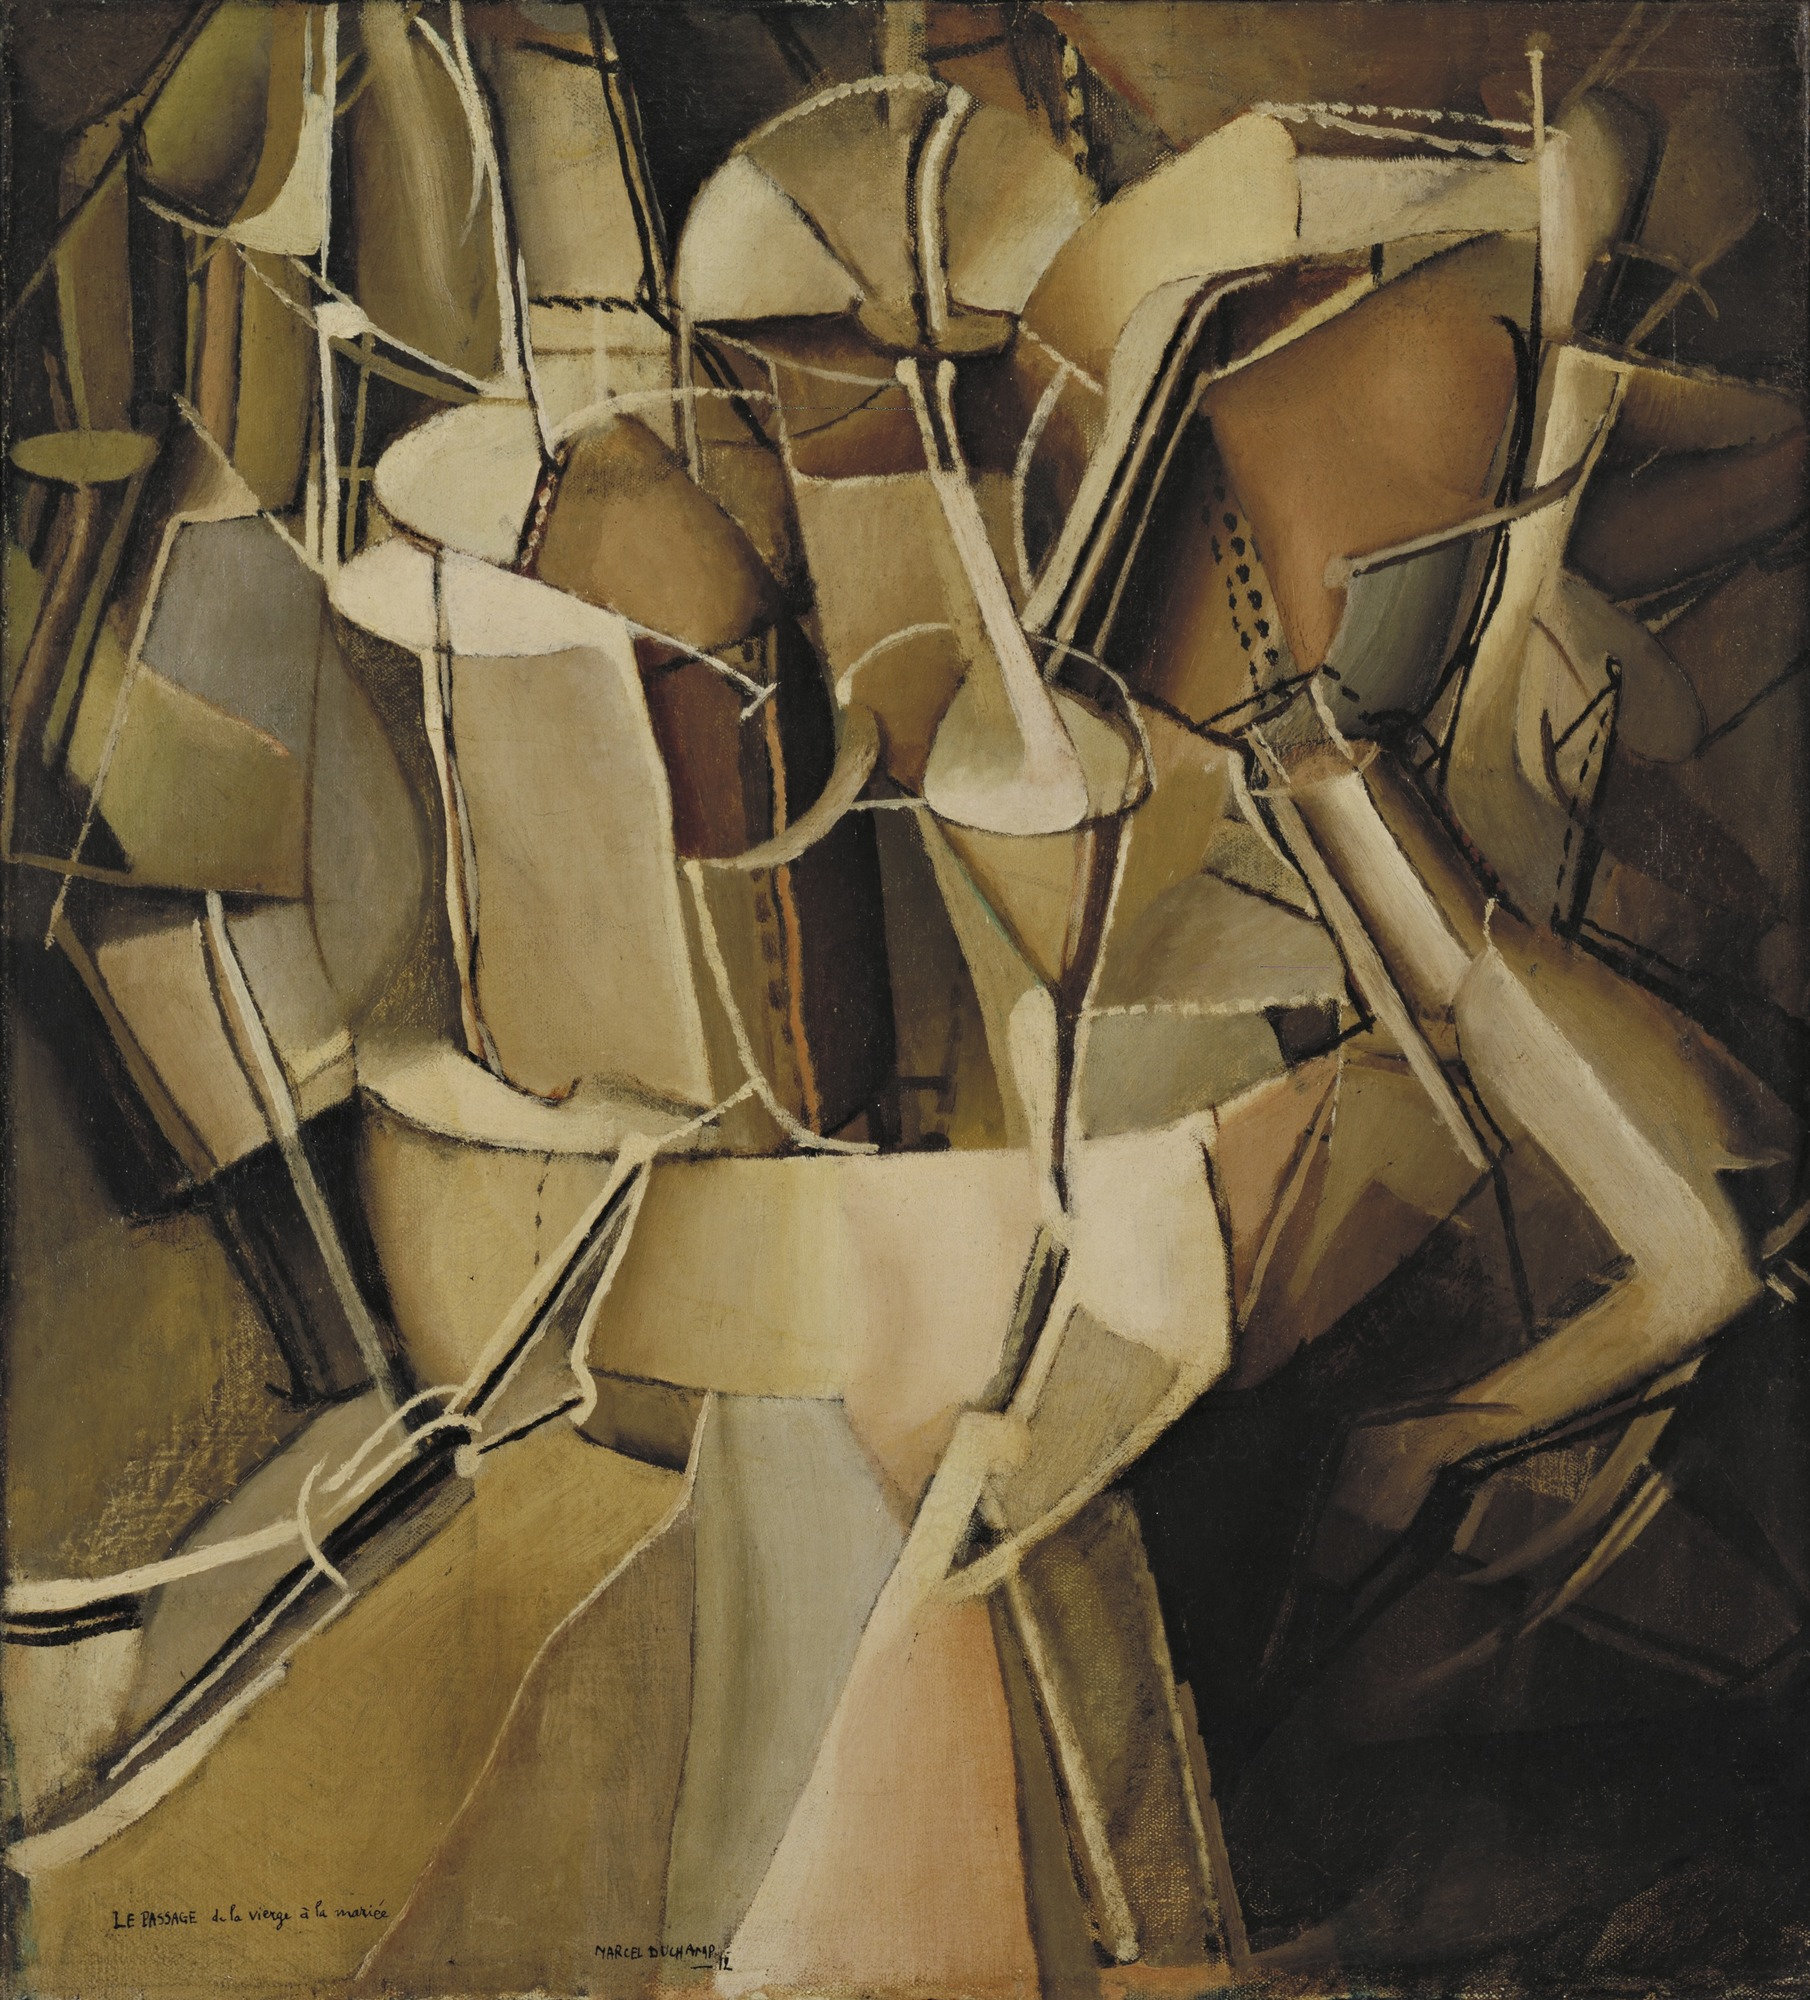 The Passage from Virgin to Bride, 1912 — Marcel Duchamp